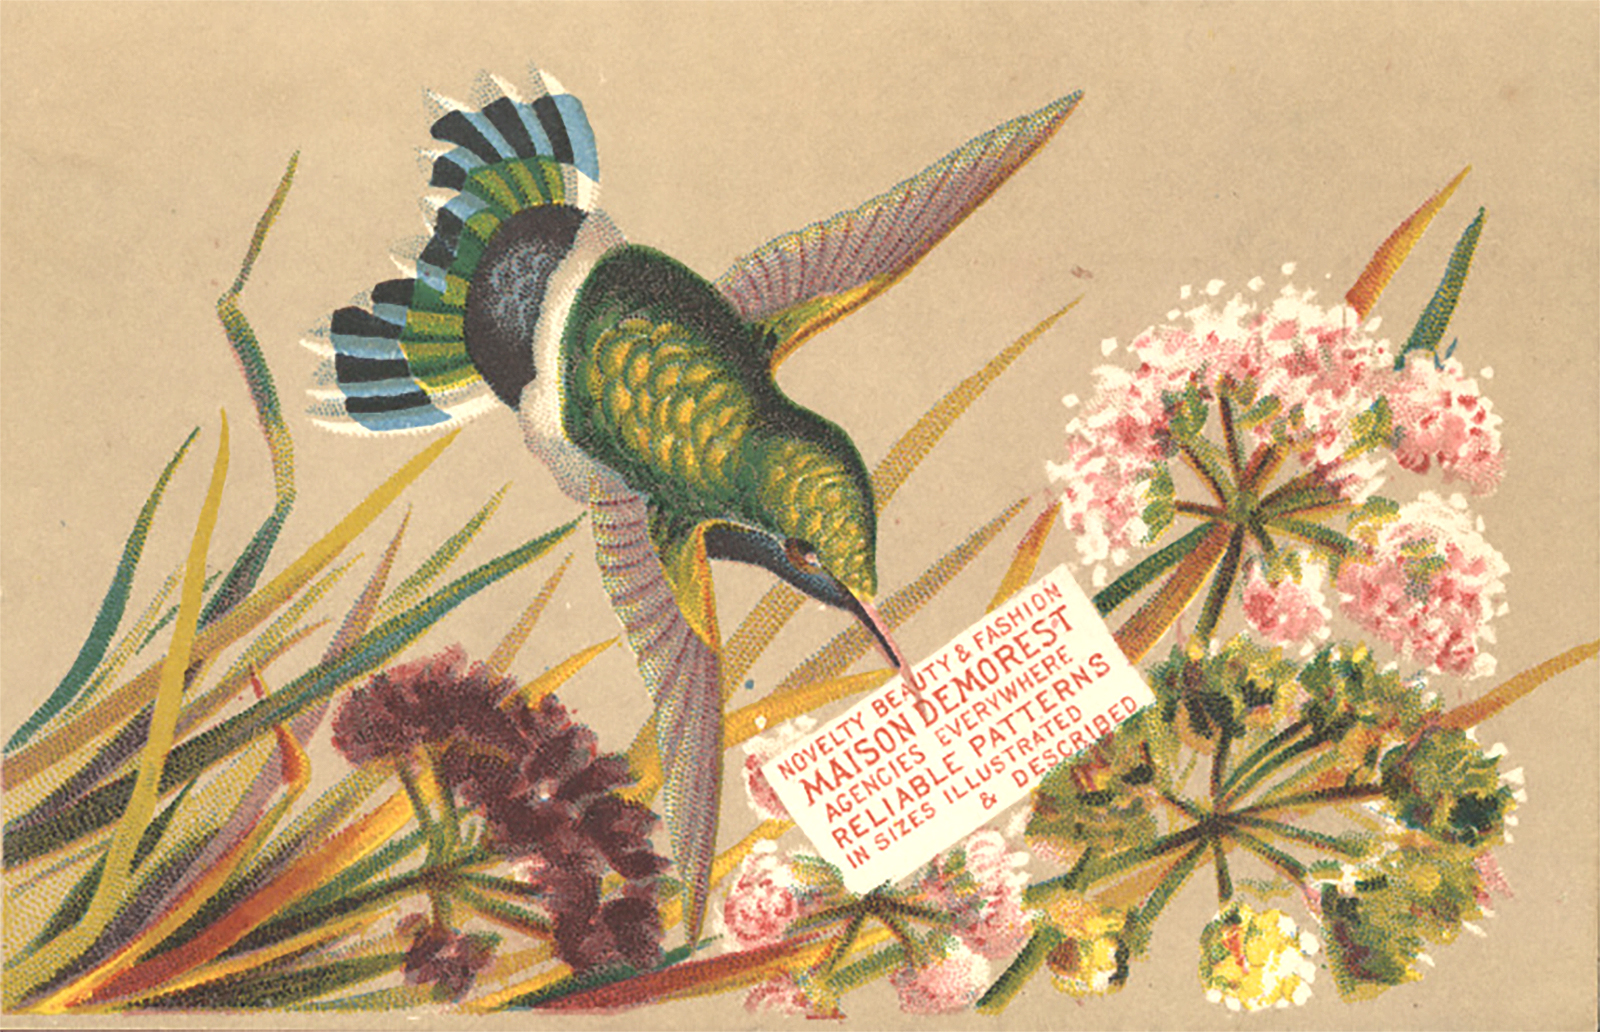 Demorest trade card - By Miami U. Libraries - Digital Collections